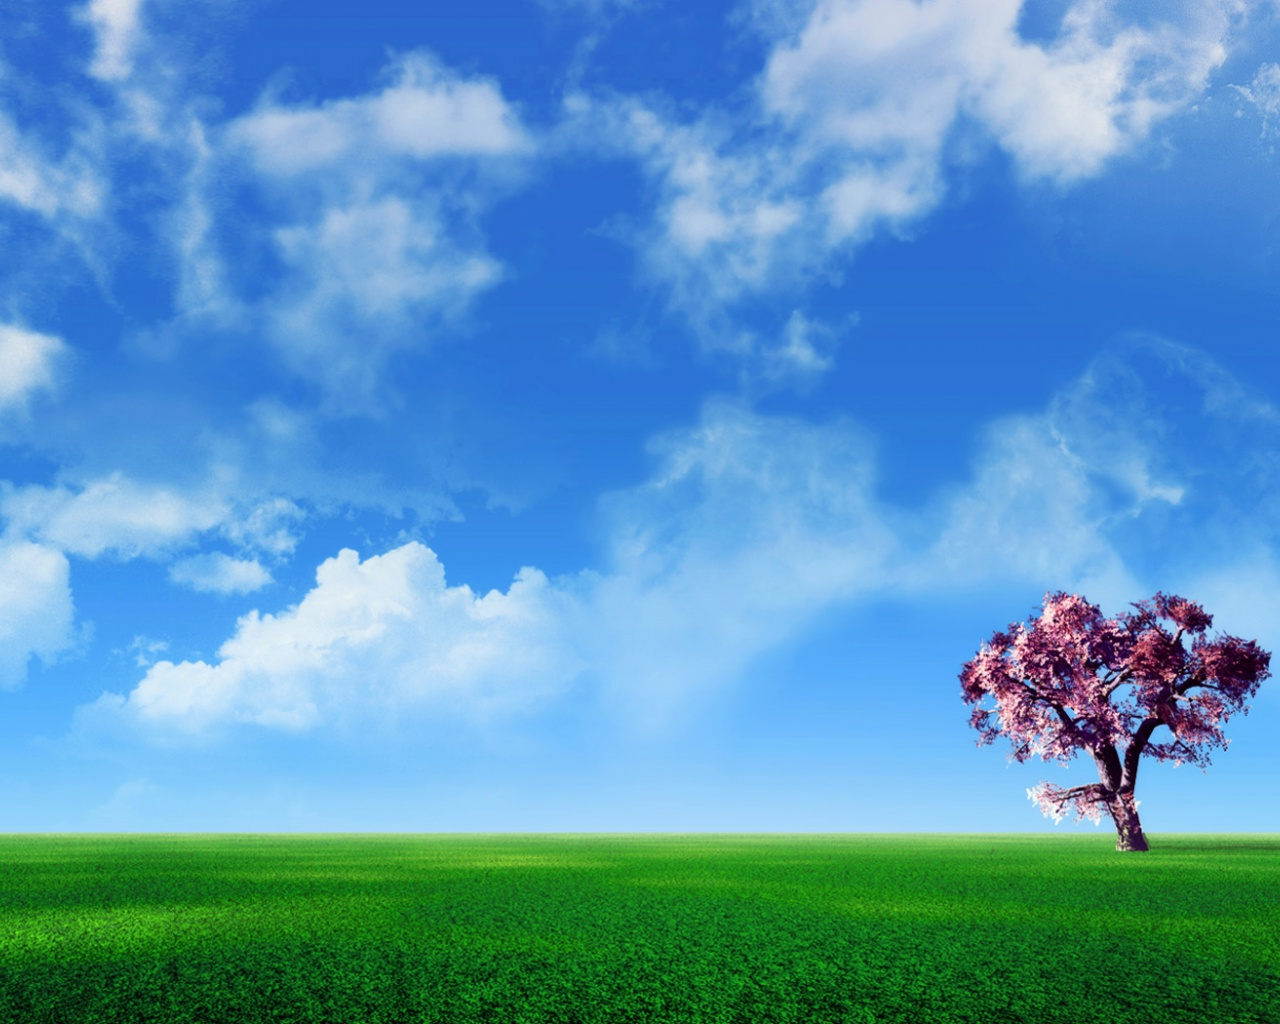 click to free download the wallpaper--Beautiful Images of Nature Landscape, a Pink Tree Under the Blue Sky, Gentle Wind Blowing